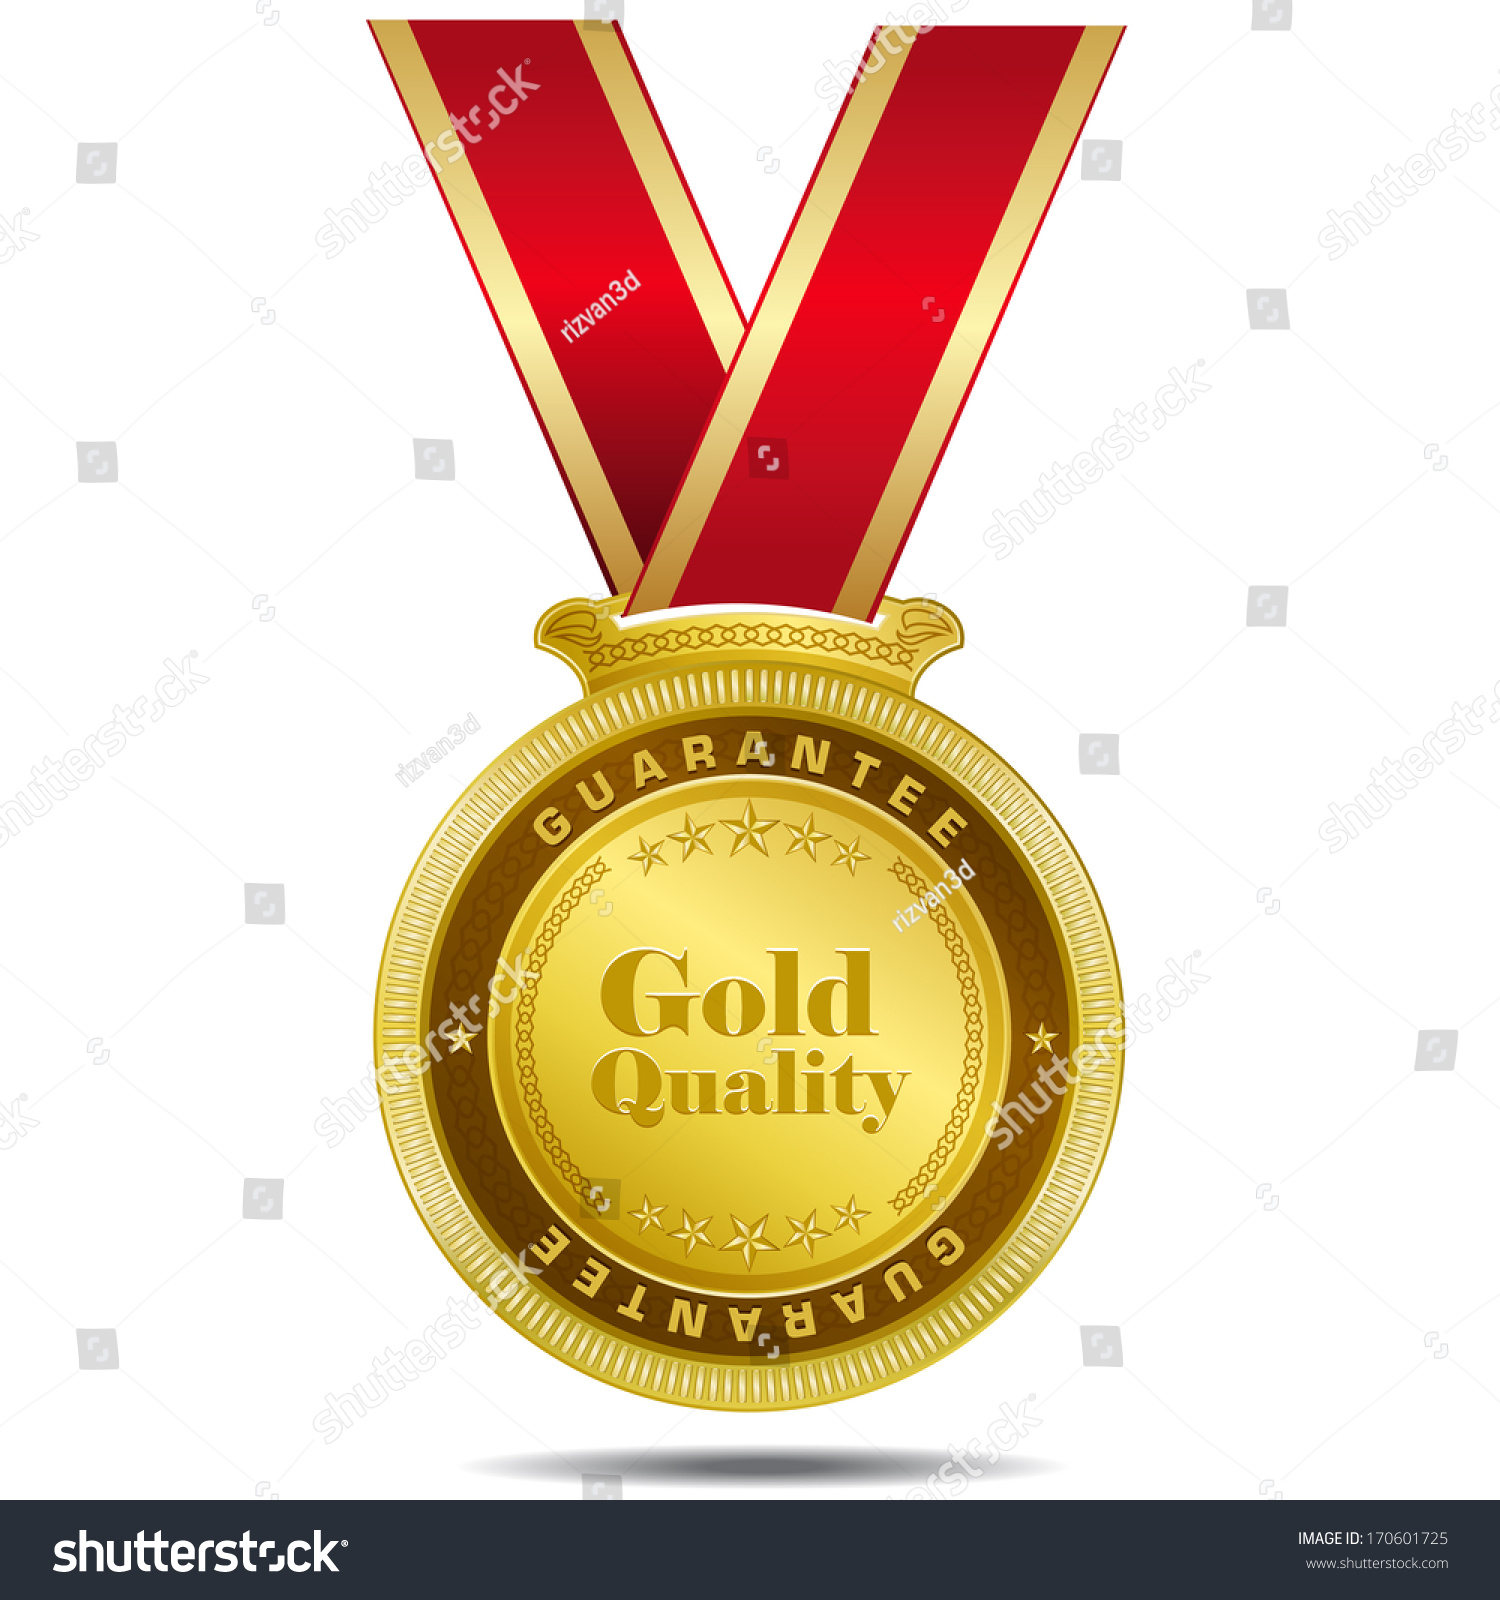 flat idea medal vector cartoon rosette stock quality label blank by award isolated white icon badge illustration gold or of golden on vladwel depositphotos best emblem